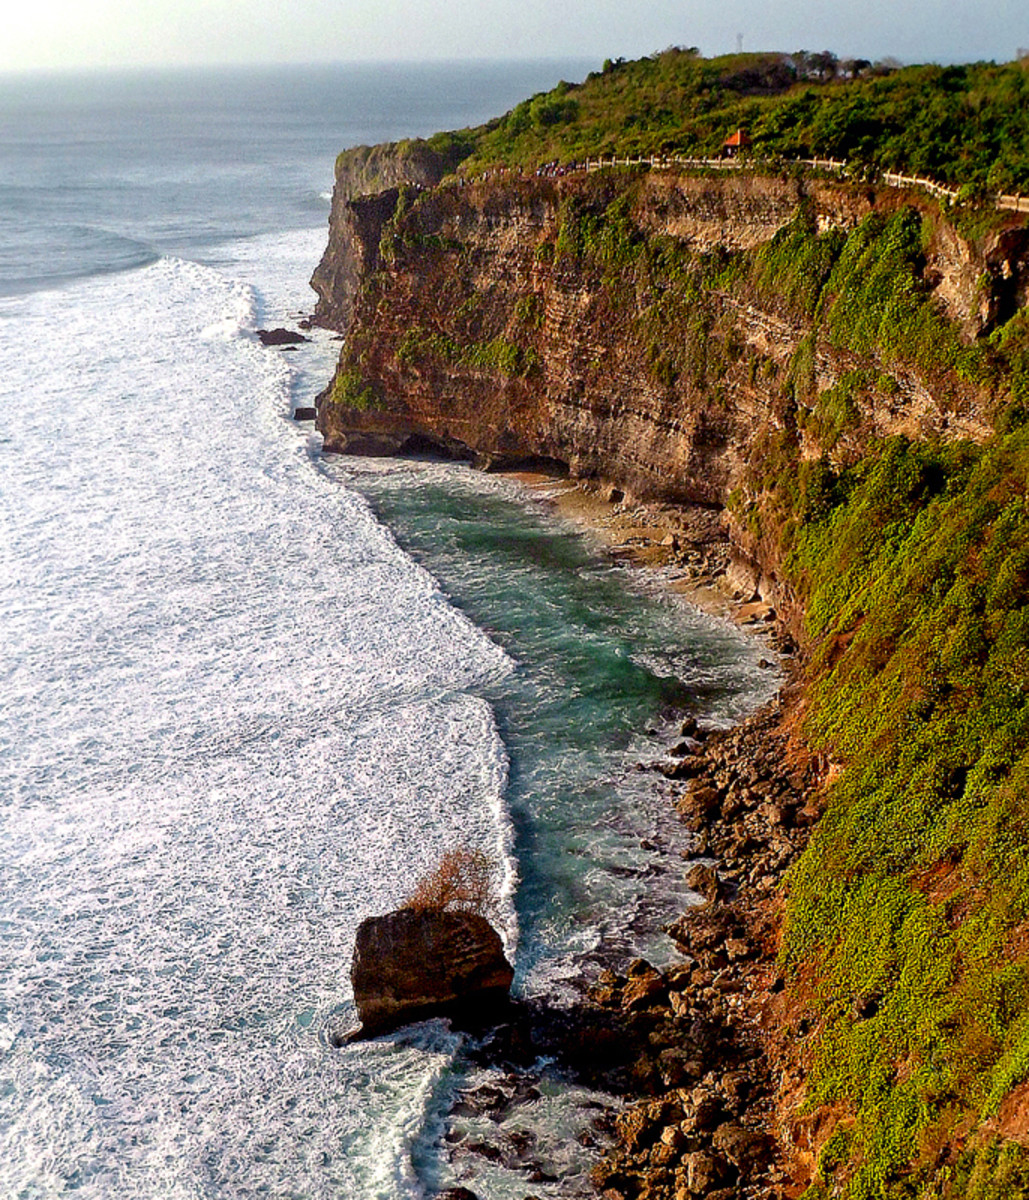 Land and sea, heaven and earth - Uluwatu Temple is a truly captivating place.